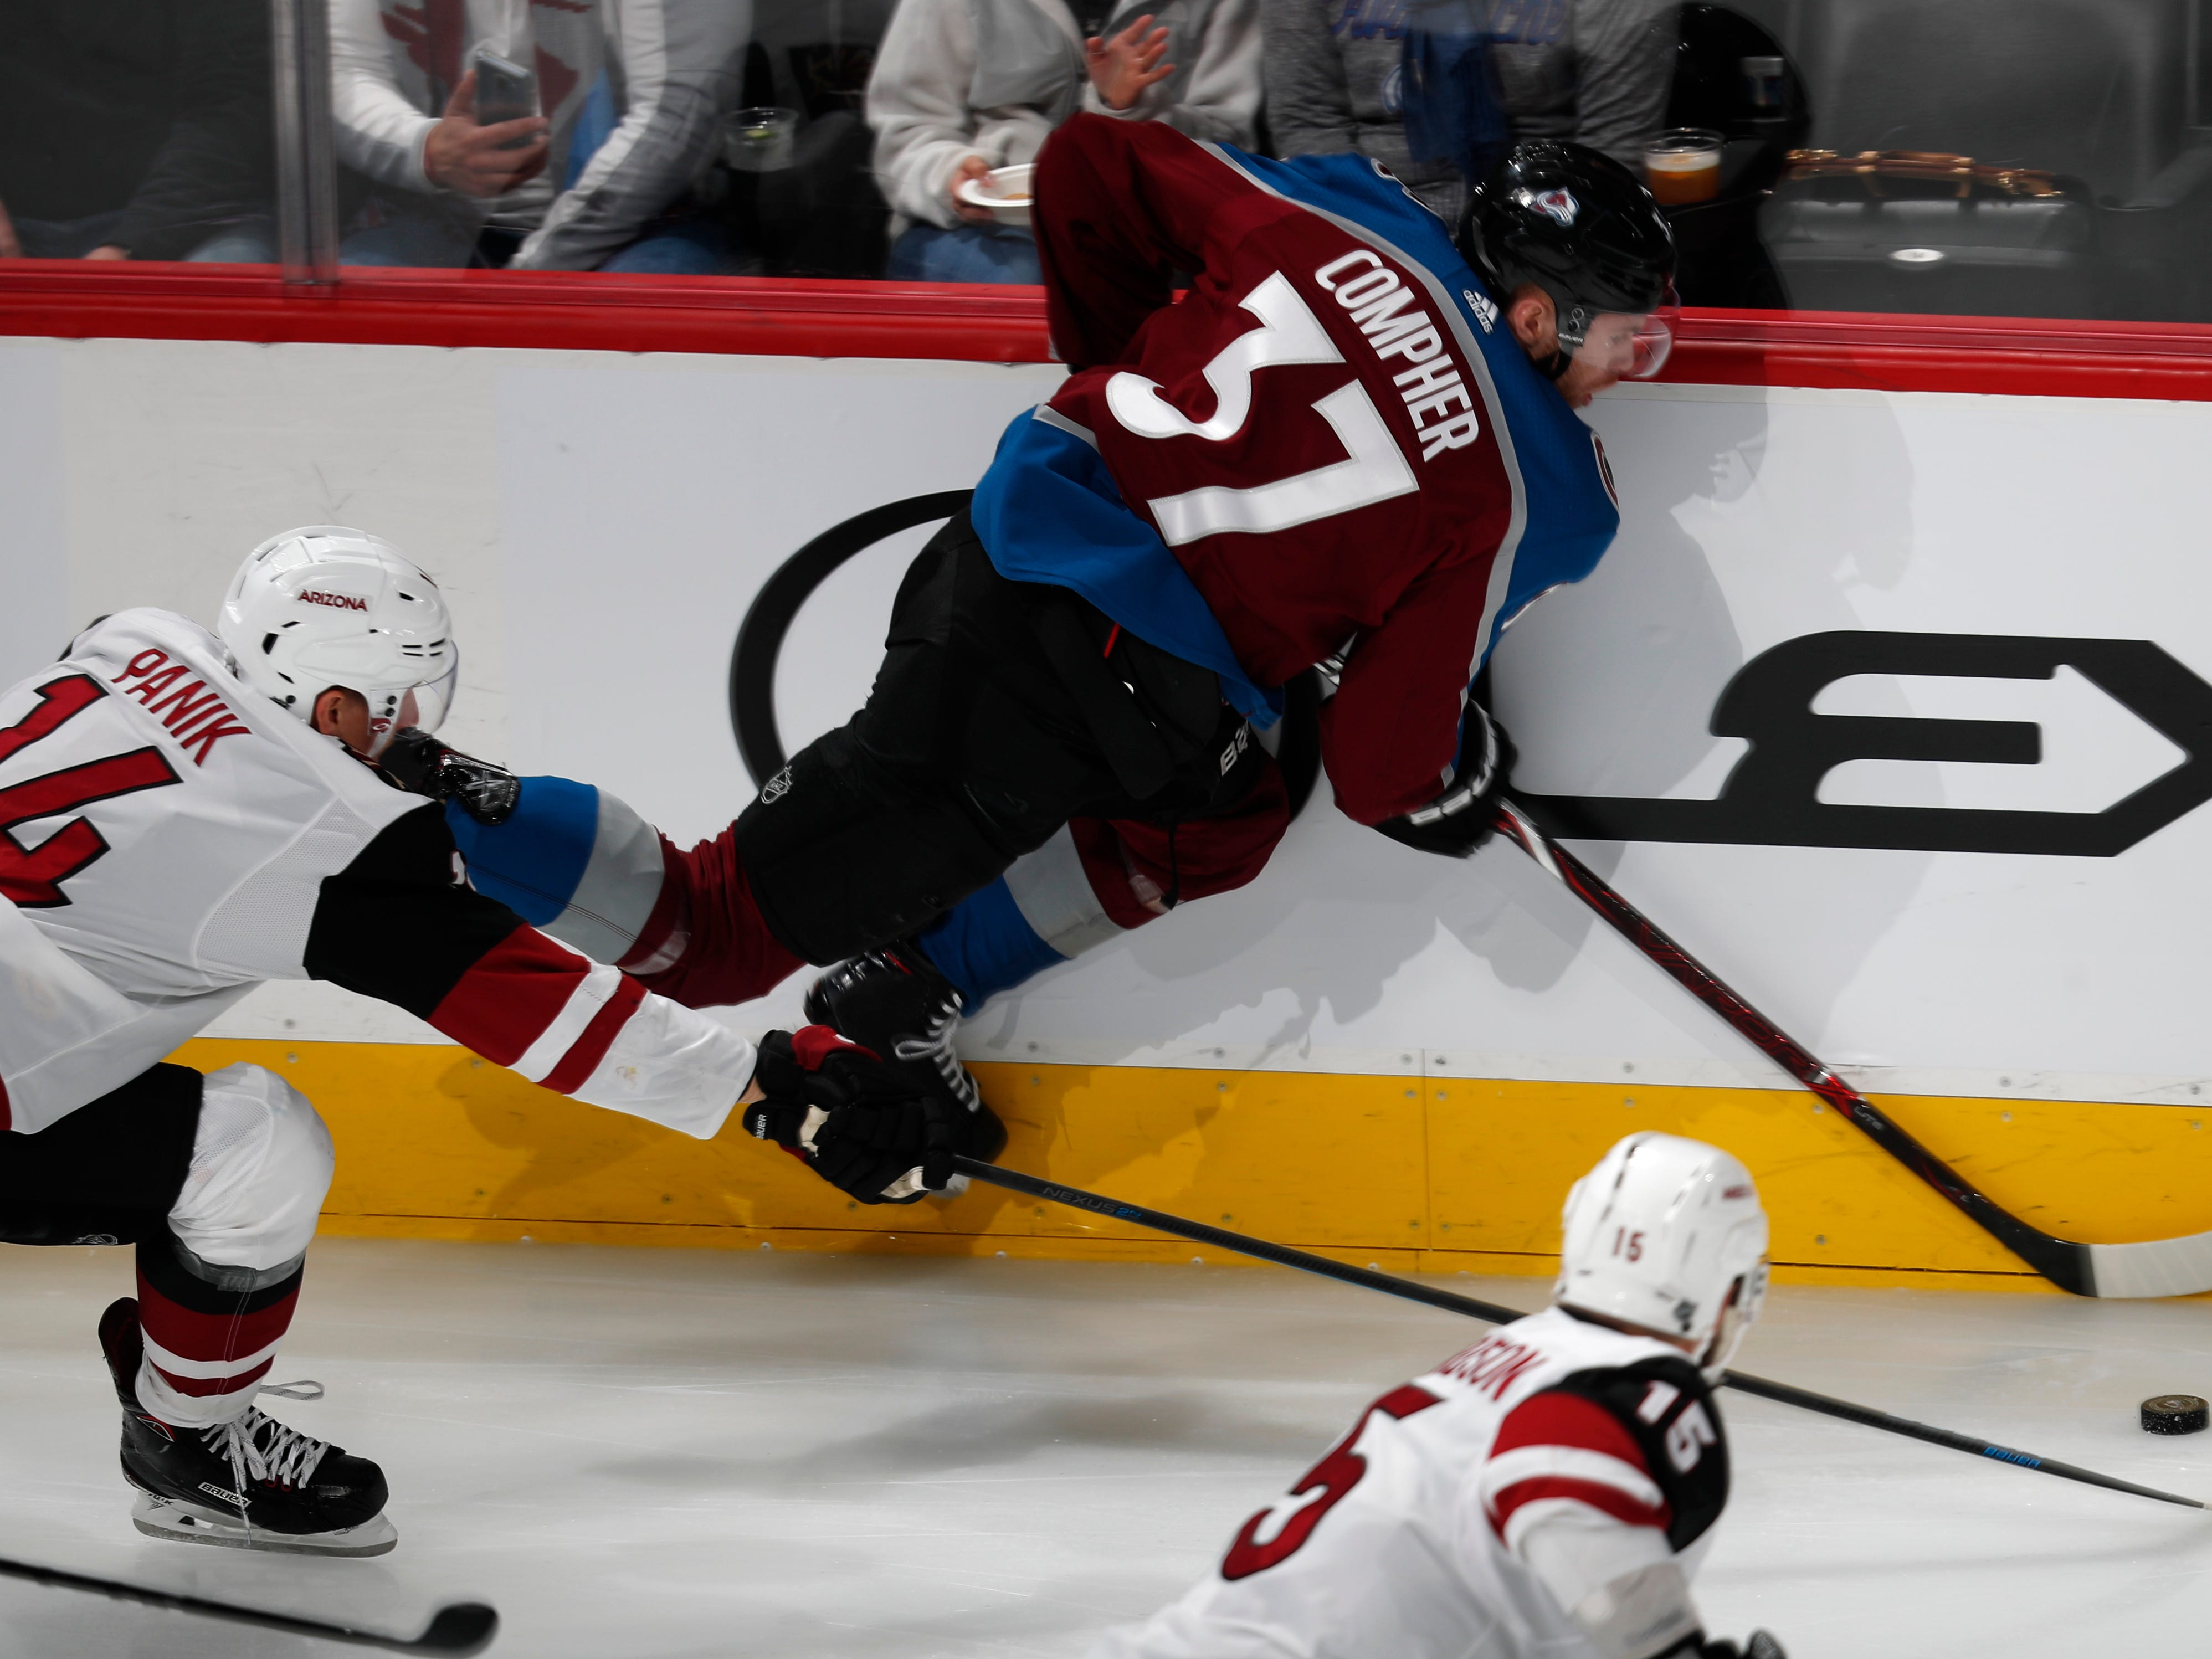 Colorado Avalanche left wing J.T. Compher, right, falls while pursuing the puck with Arizona Coyotes right wing Richard Panik in the first period of an NHL hockey game Friday, March 29, 2019, in Denver.